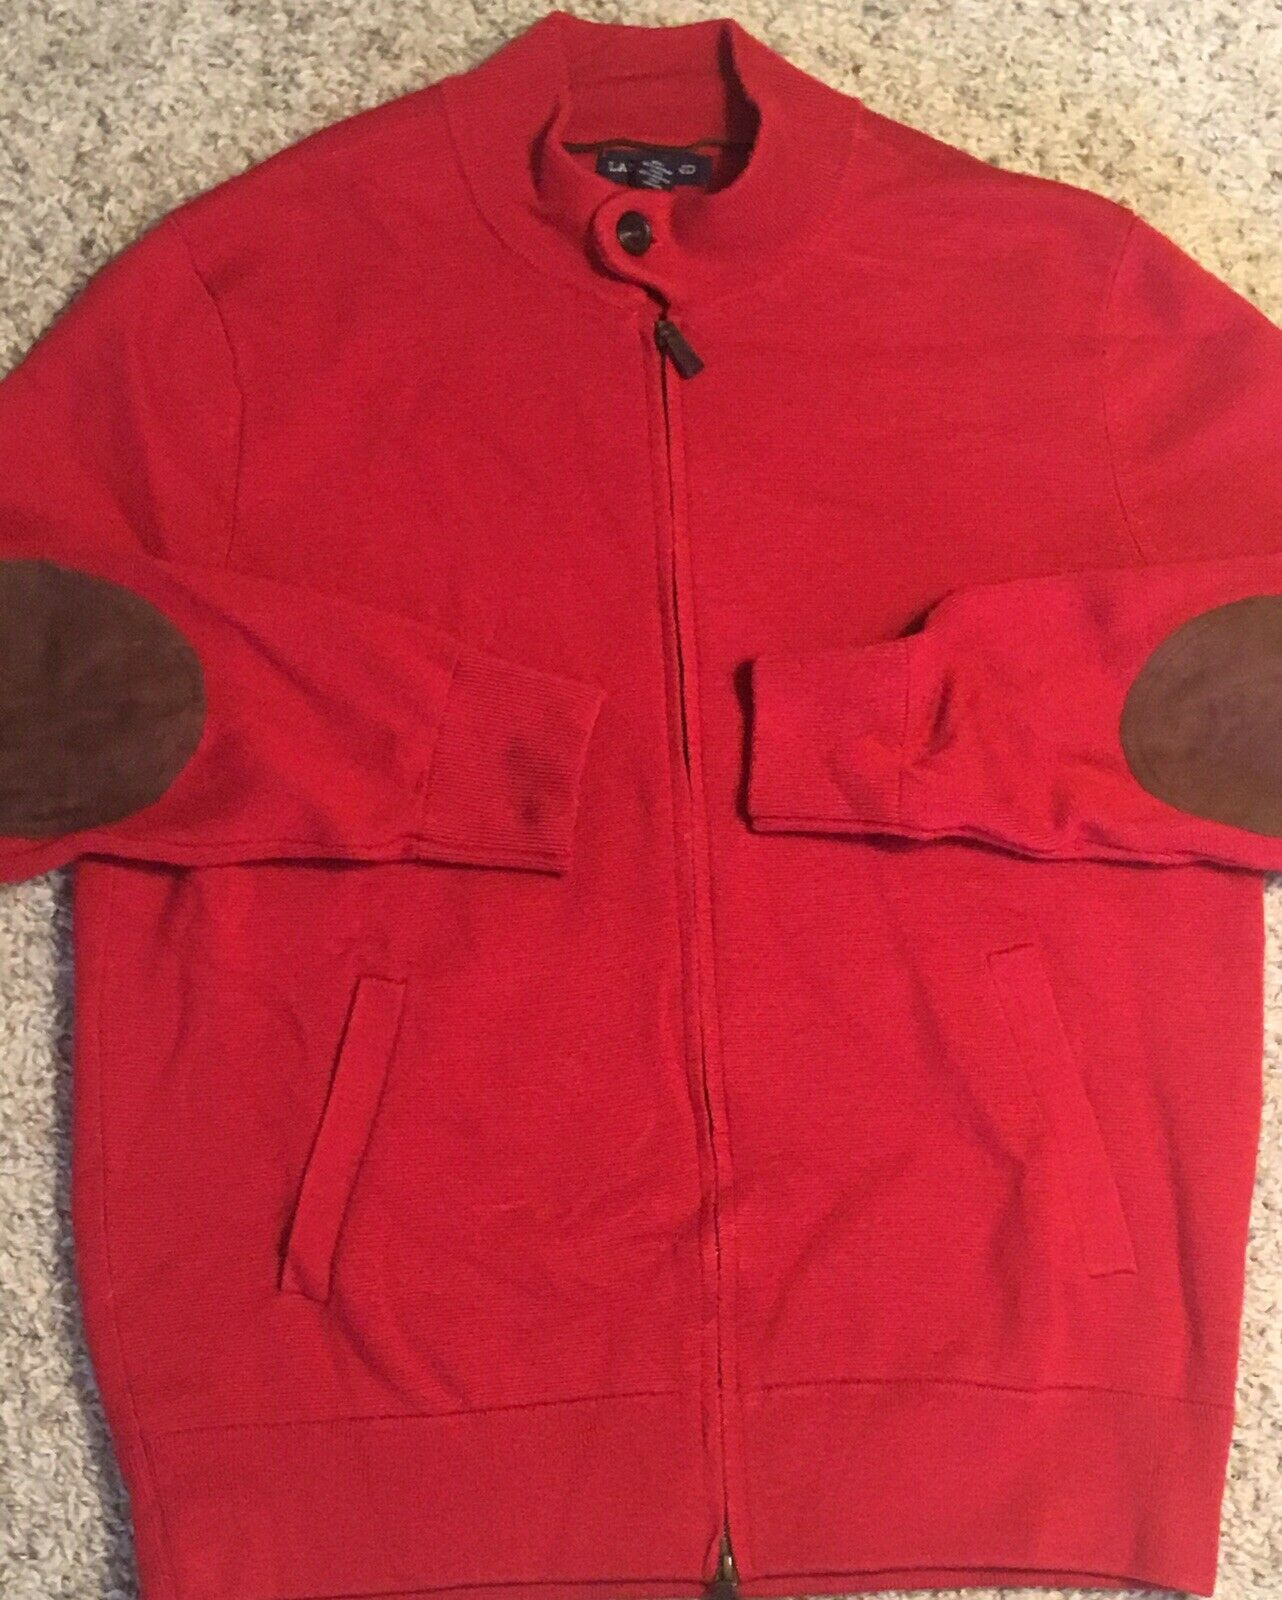 Lands End Mens Sz L (42-44) Red Knit Full Zip Suede Elbow Patched Sweater EUC